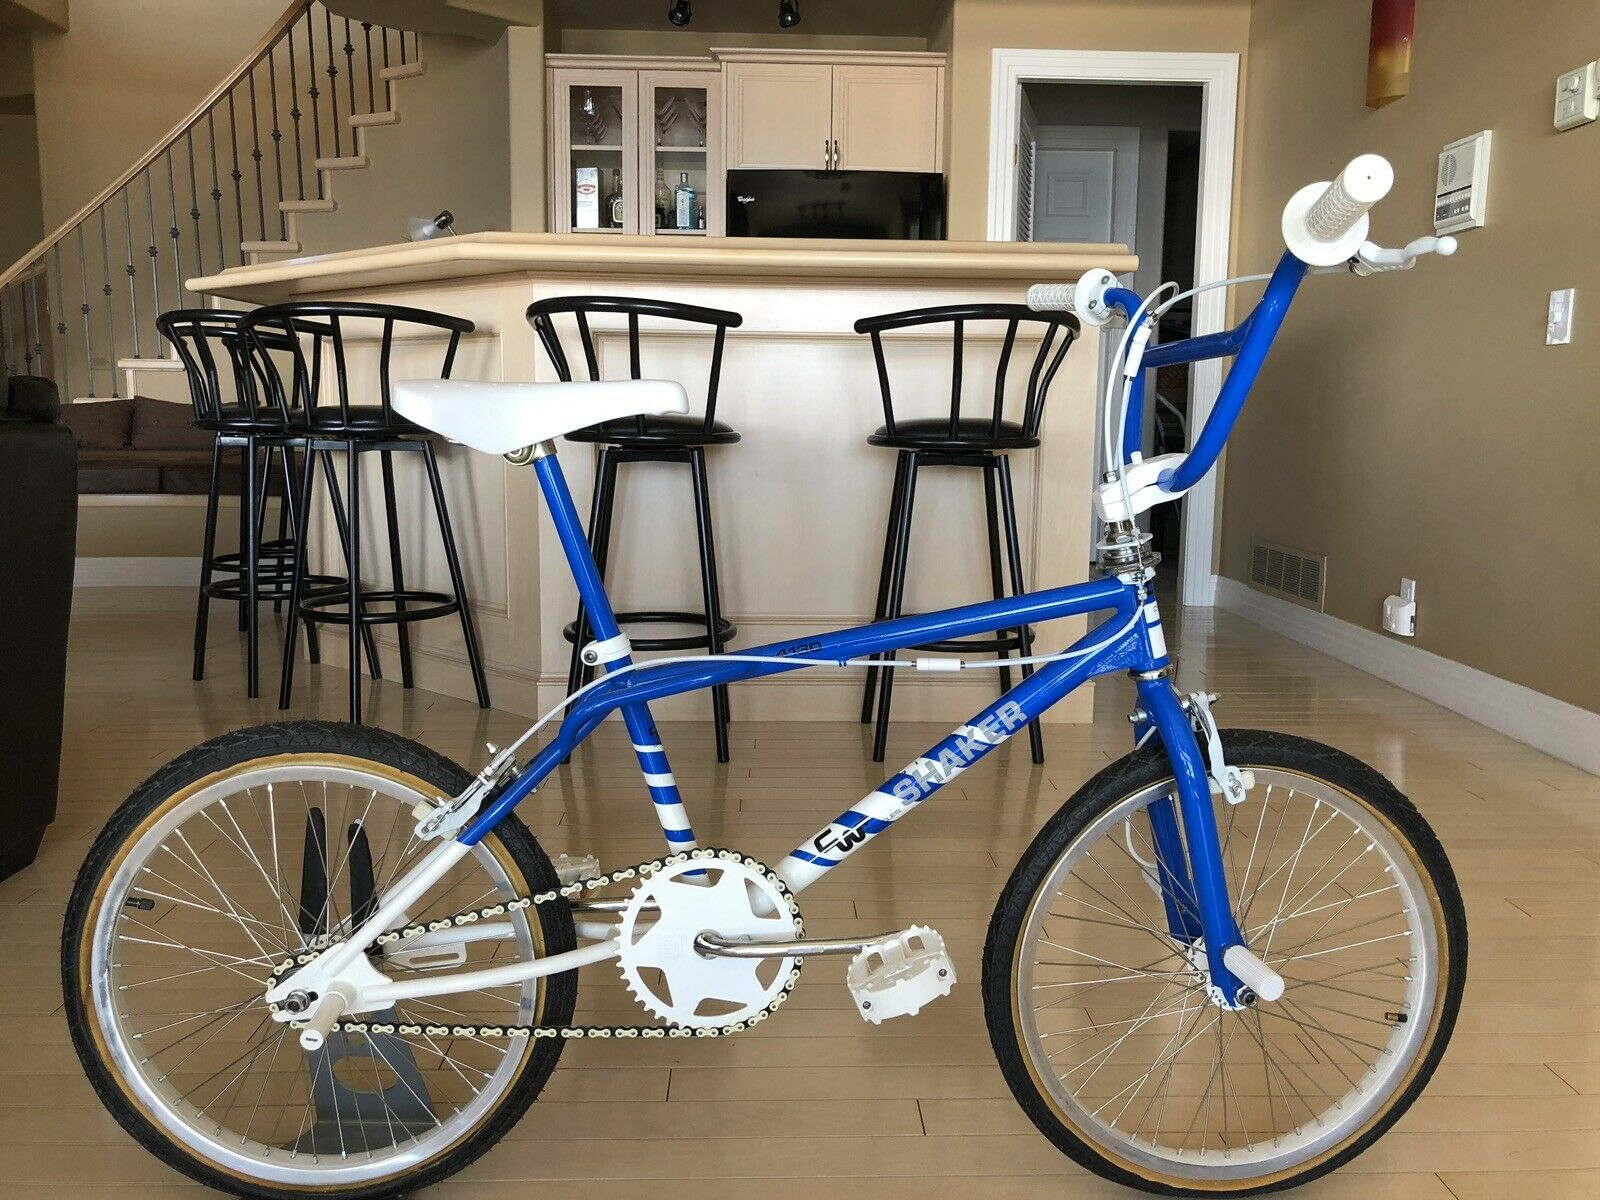 1987 CW Shaker Freestyle  BMX Complete. Rare Restored Frame By CW.  first-class quality